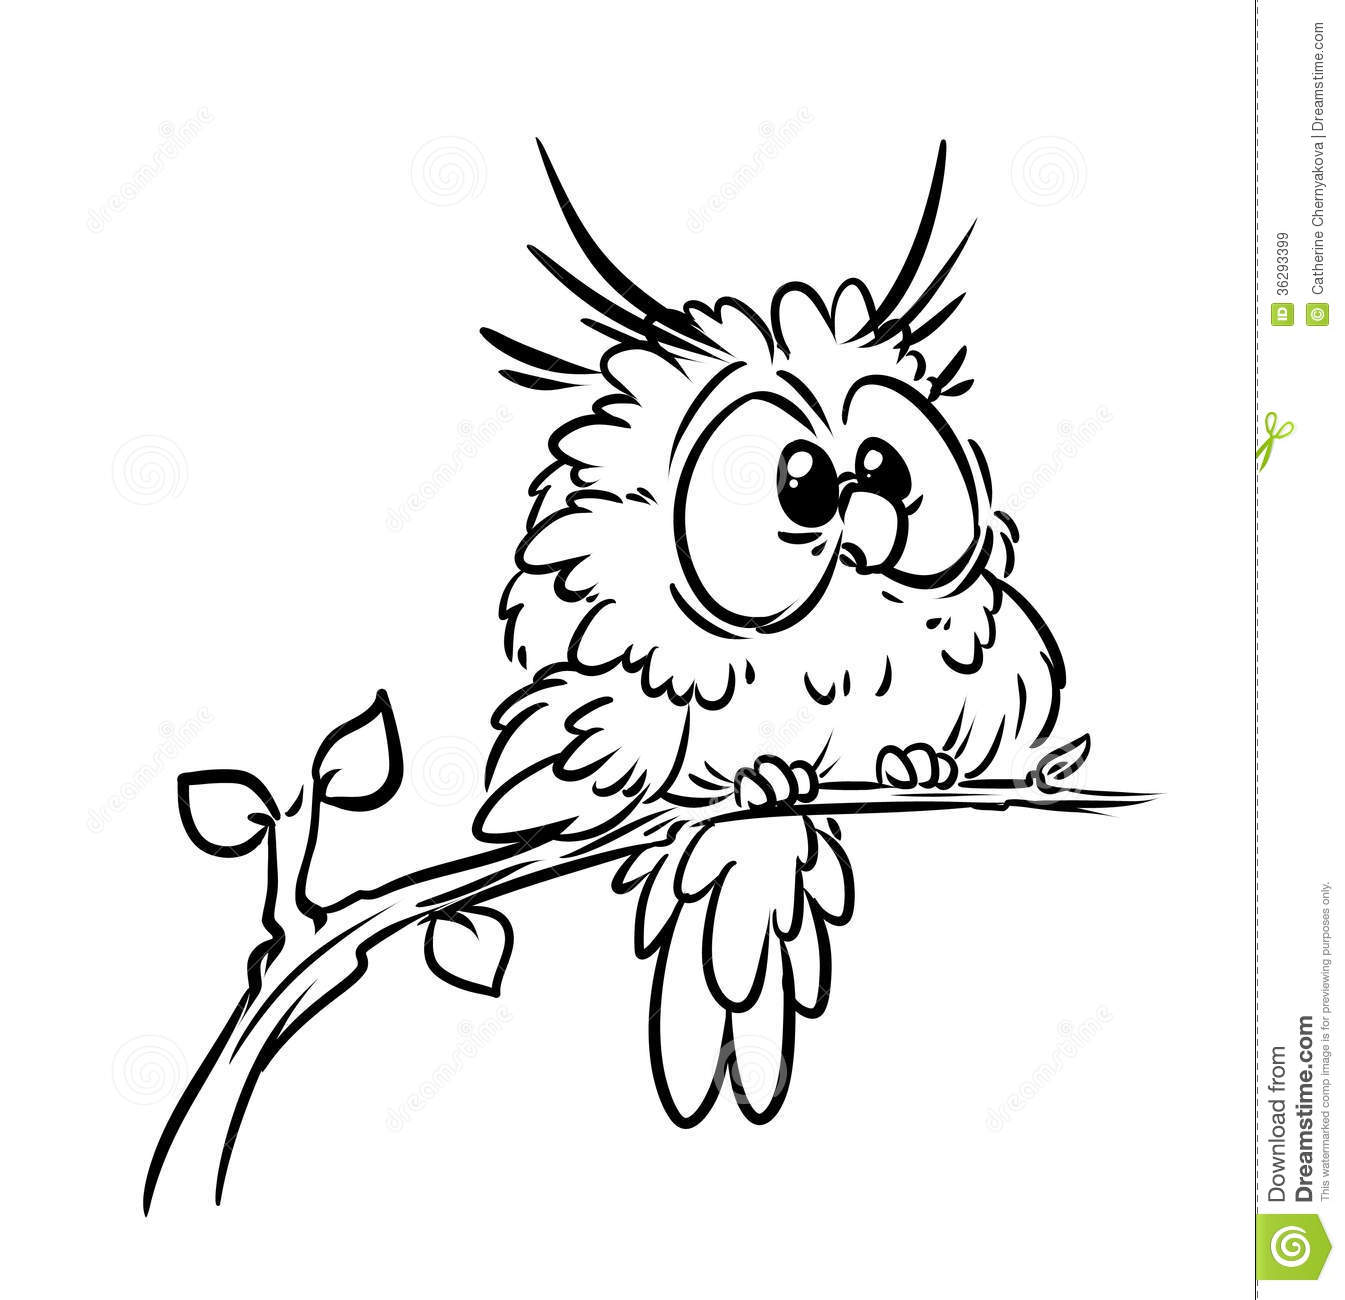 Bird owl coloring pages stock illustration Illustration